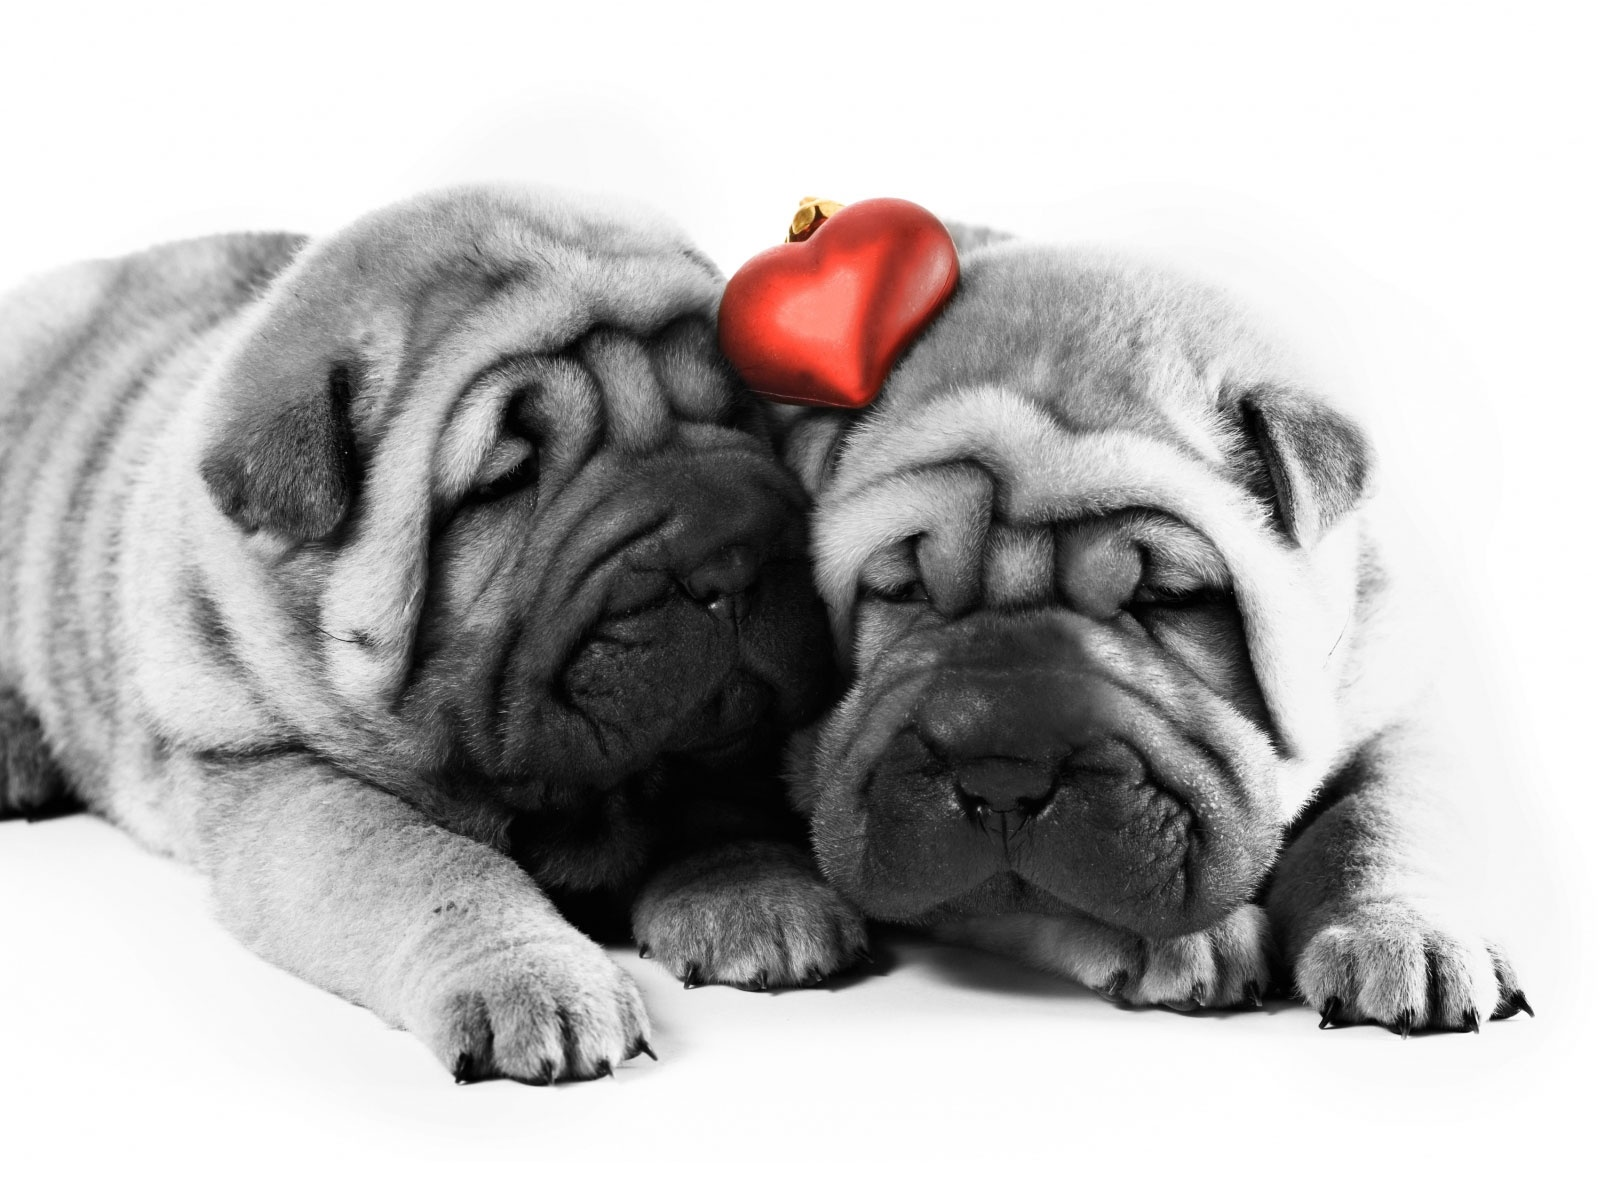 Valentine Shar Pei dogs wallpaper